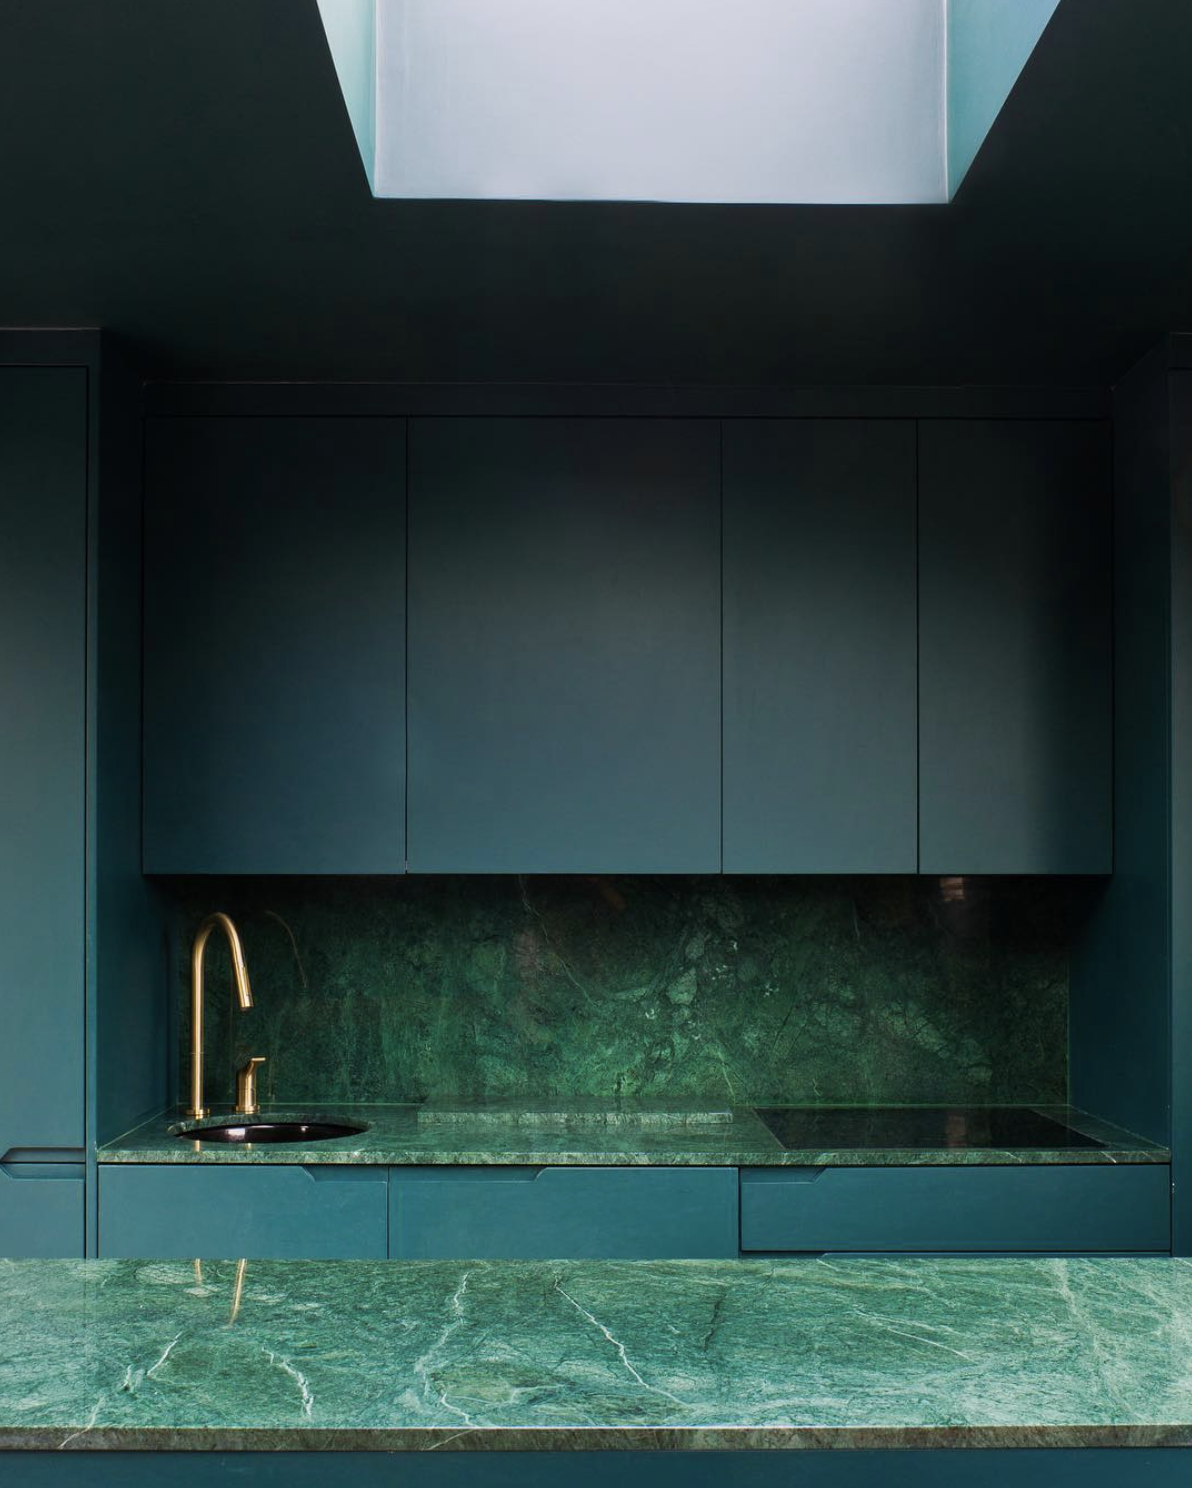 Source . Now THIS is how you do a green kitchen. I love every single risk taken here and want to cook up a storm in this jewel box. Green kitchens are everywhere these days, but the green marble is a fun spin on that trend instead of just incorporating green with paint.